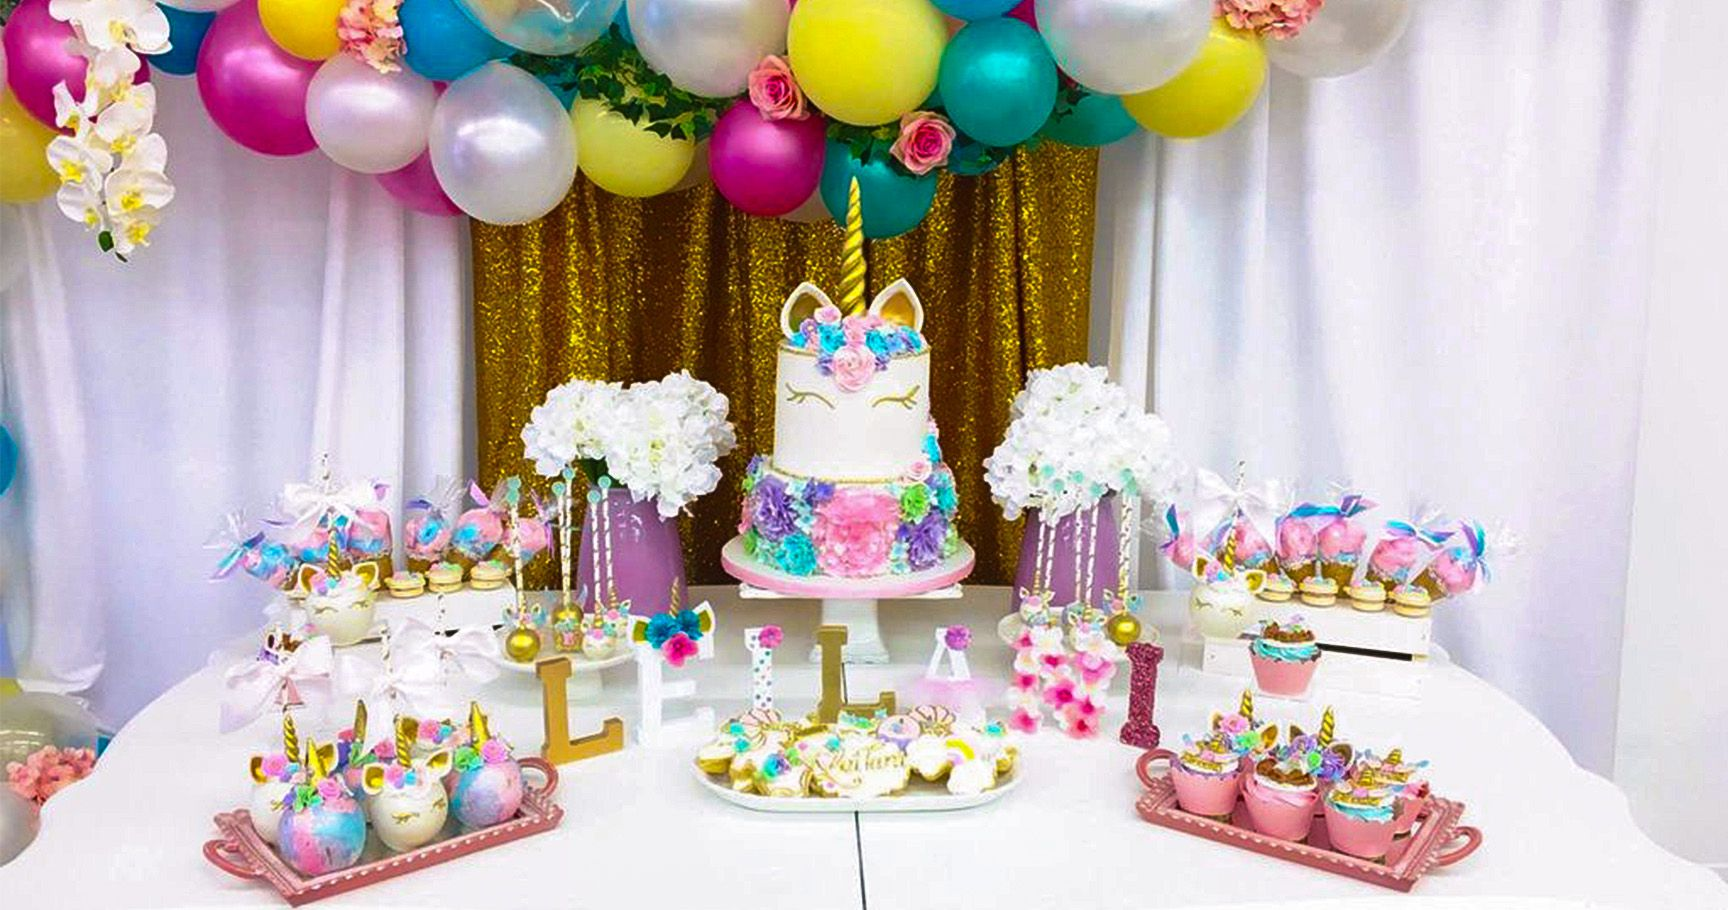 10 Trendiest Baby Shower Themes That Will Be All The Rage In 2019